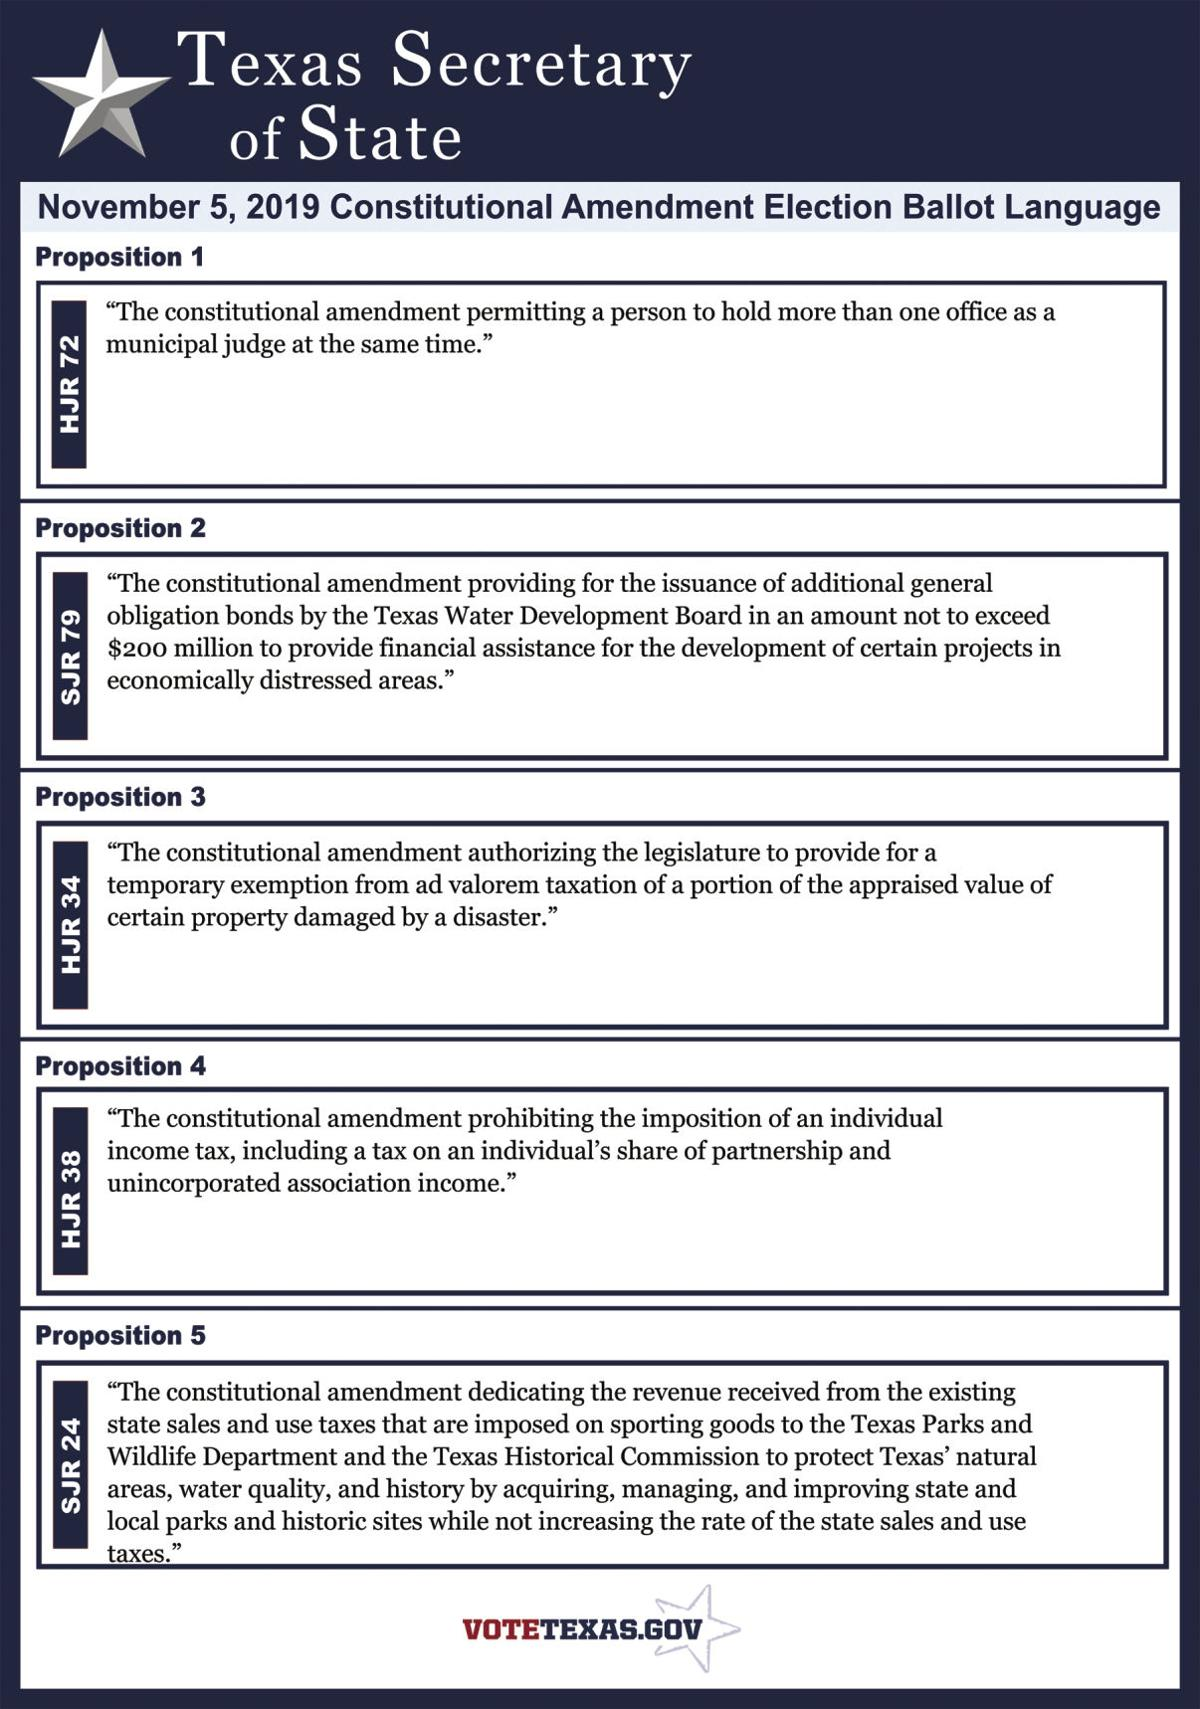 First five propositions